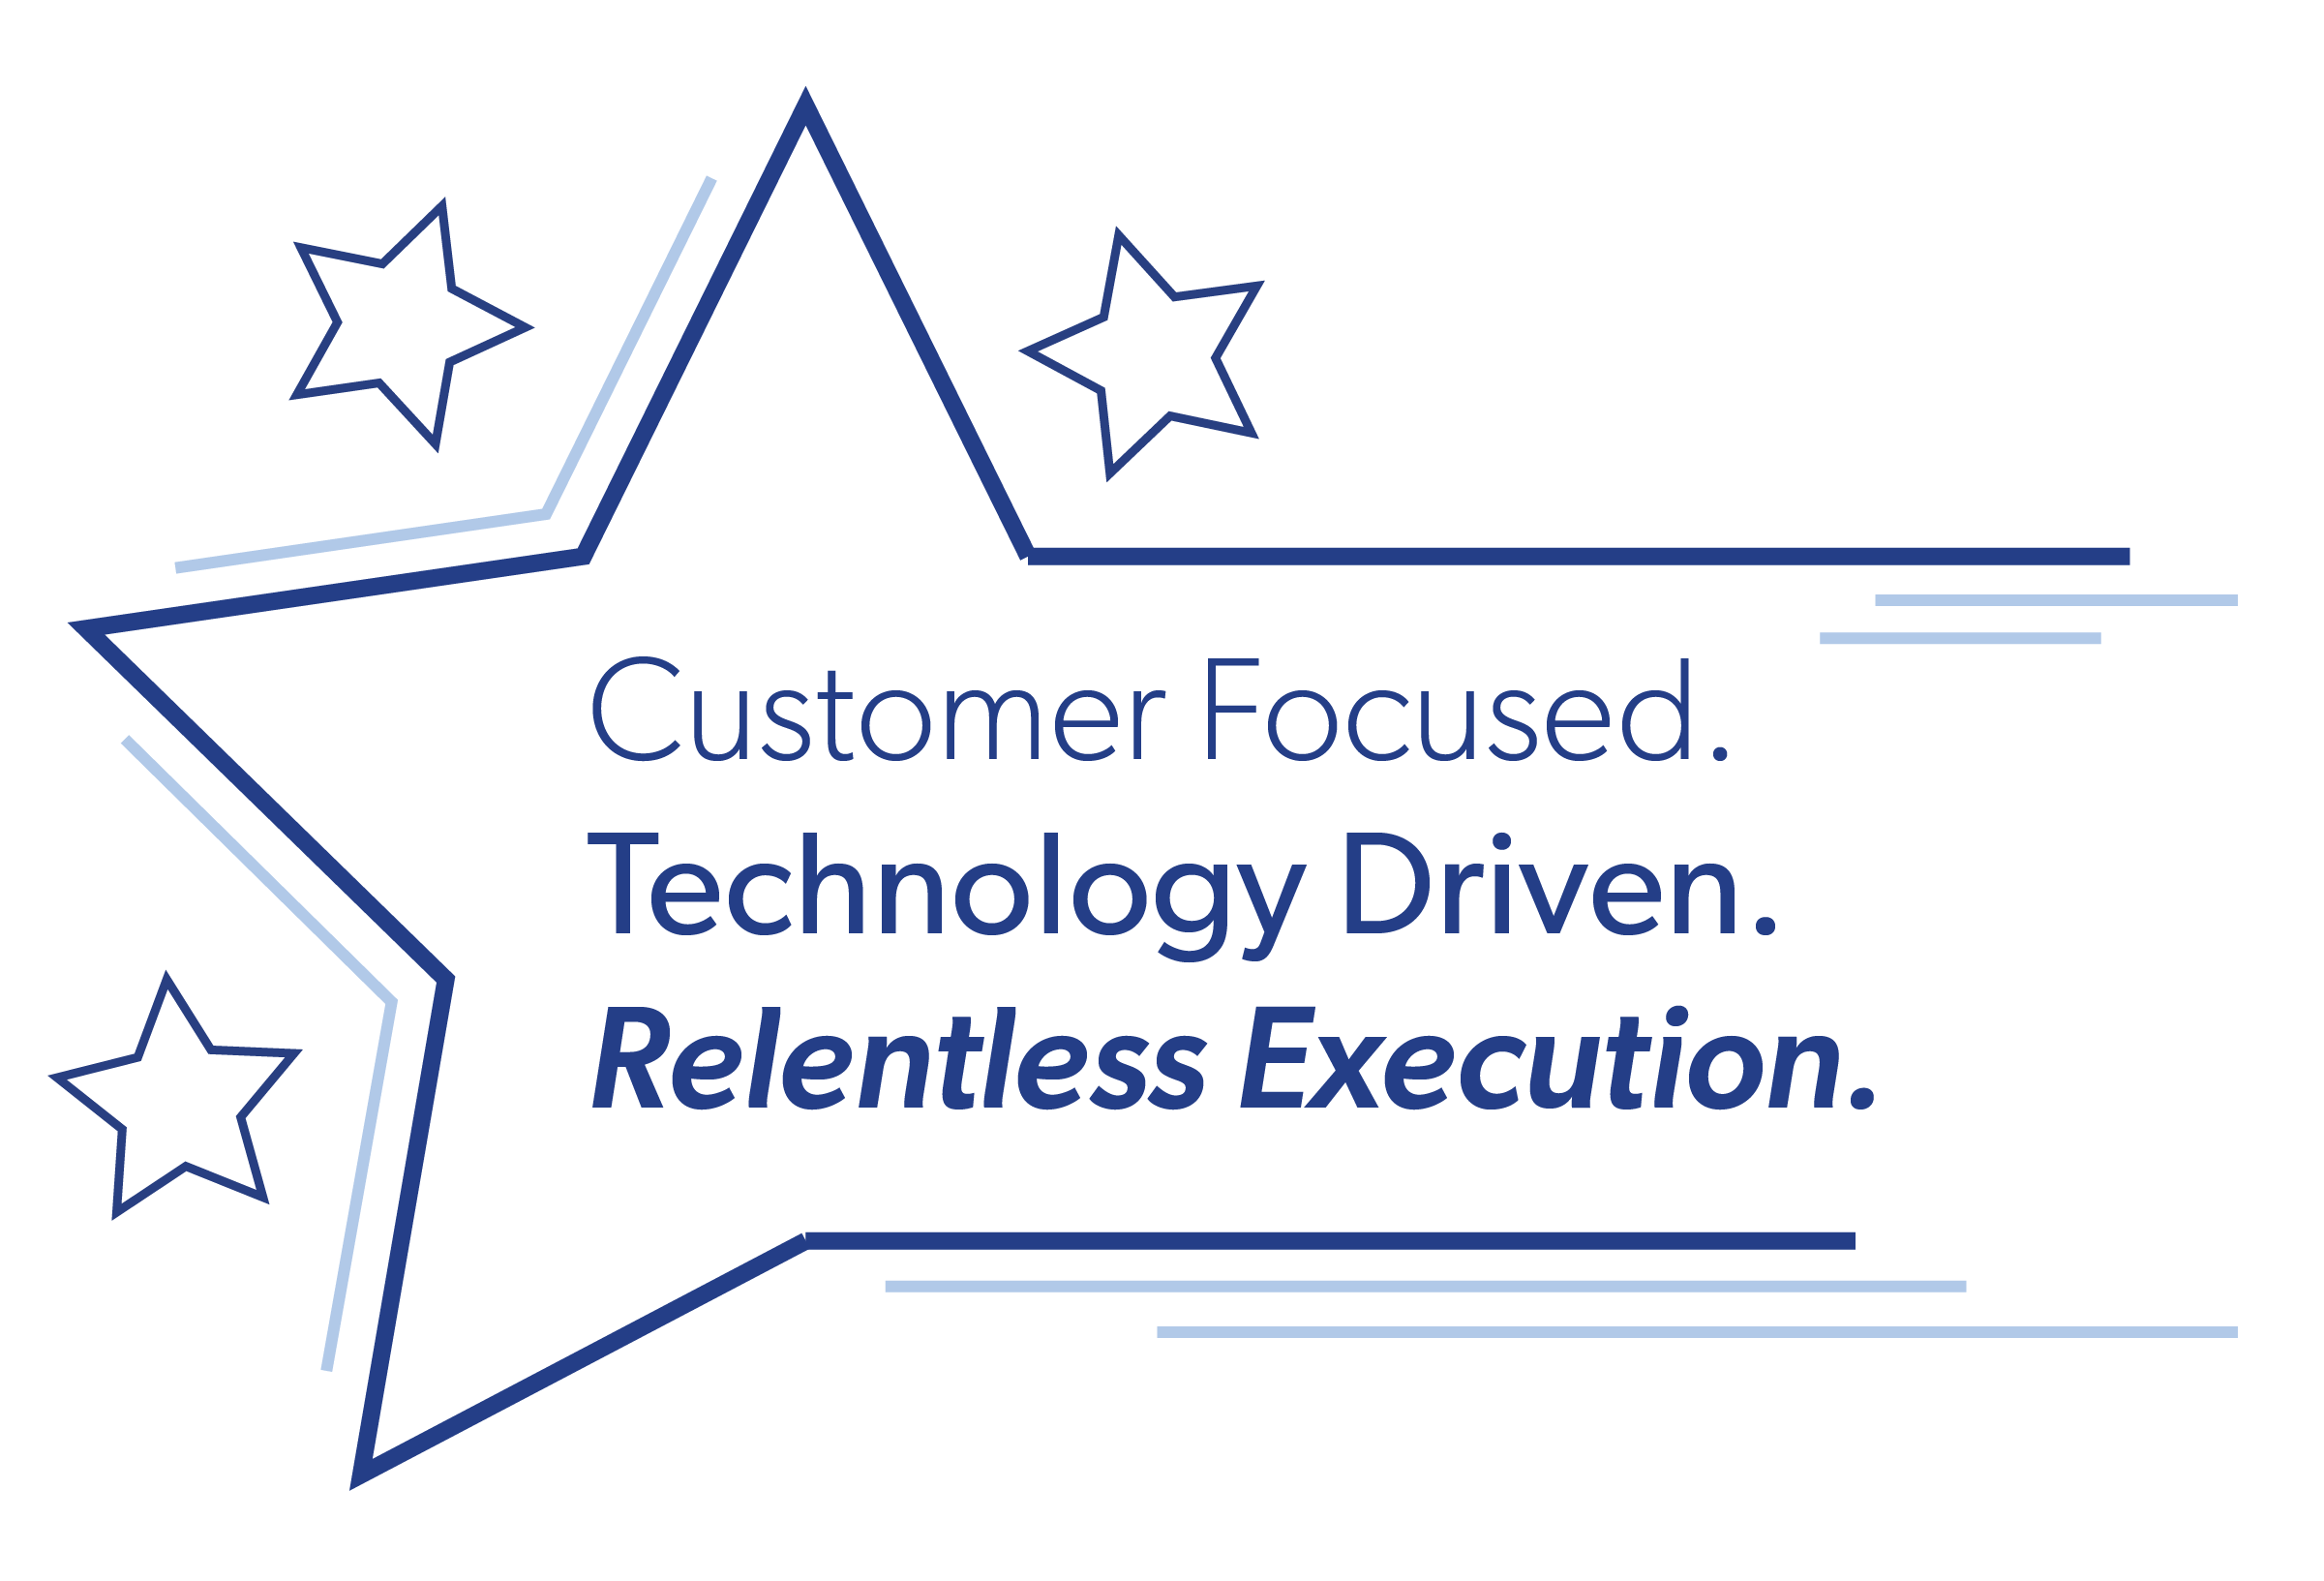 Customer Focused. Technology Driven. Relentless Execution.